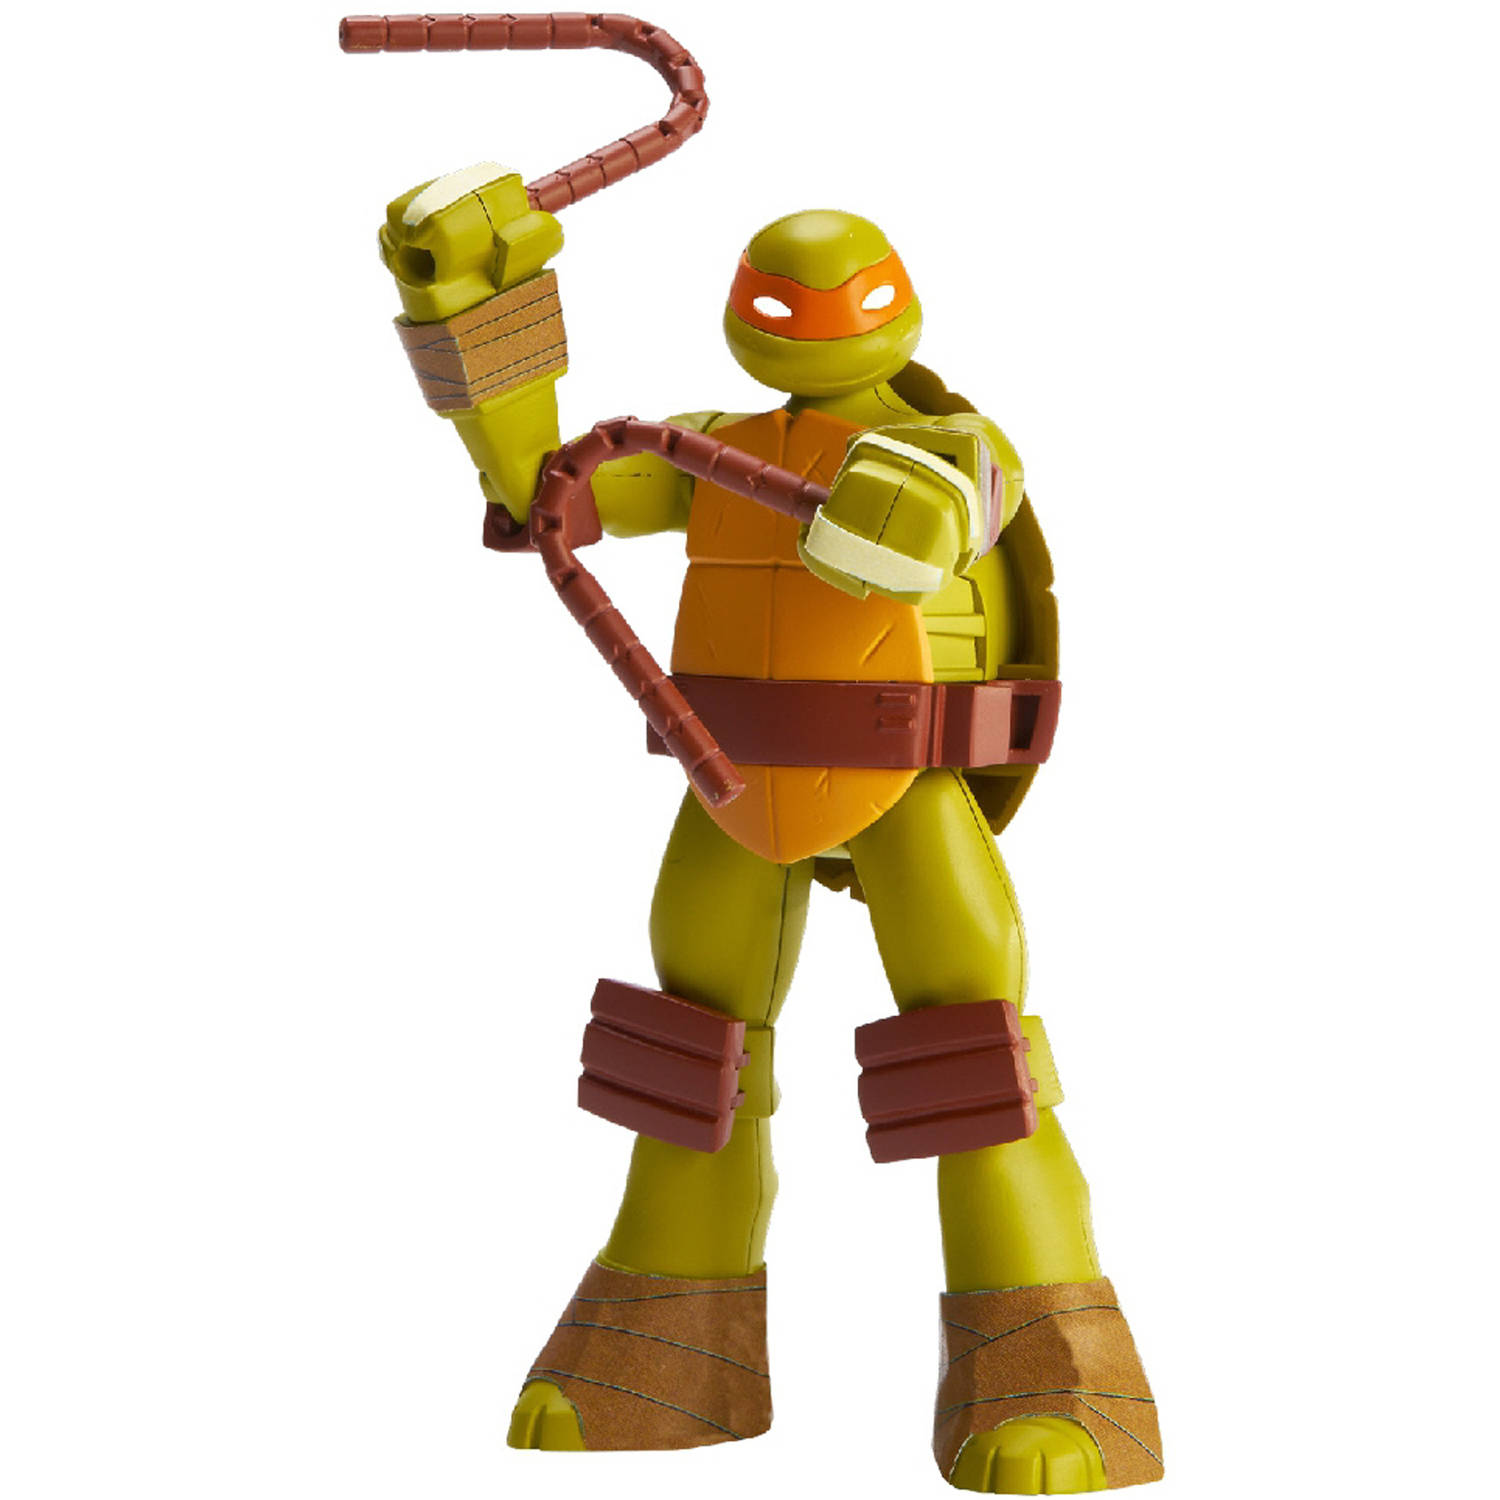 SpruKits Teenage Mutant Ninja Turtles Michelangelo Action Figure Model Kit, Level 1